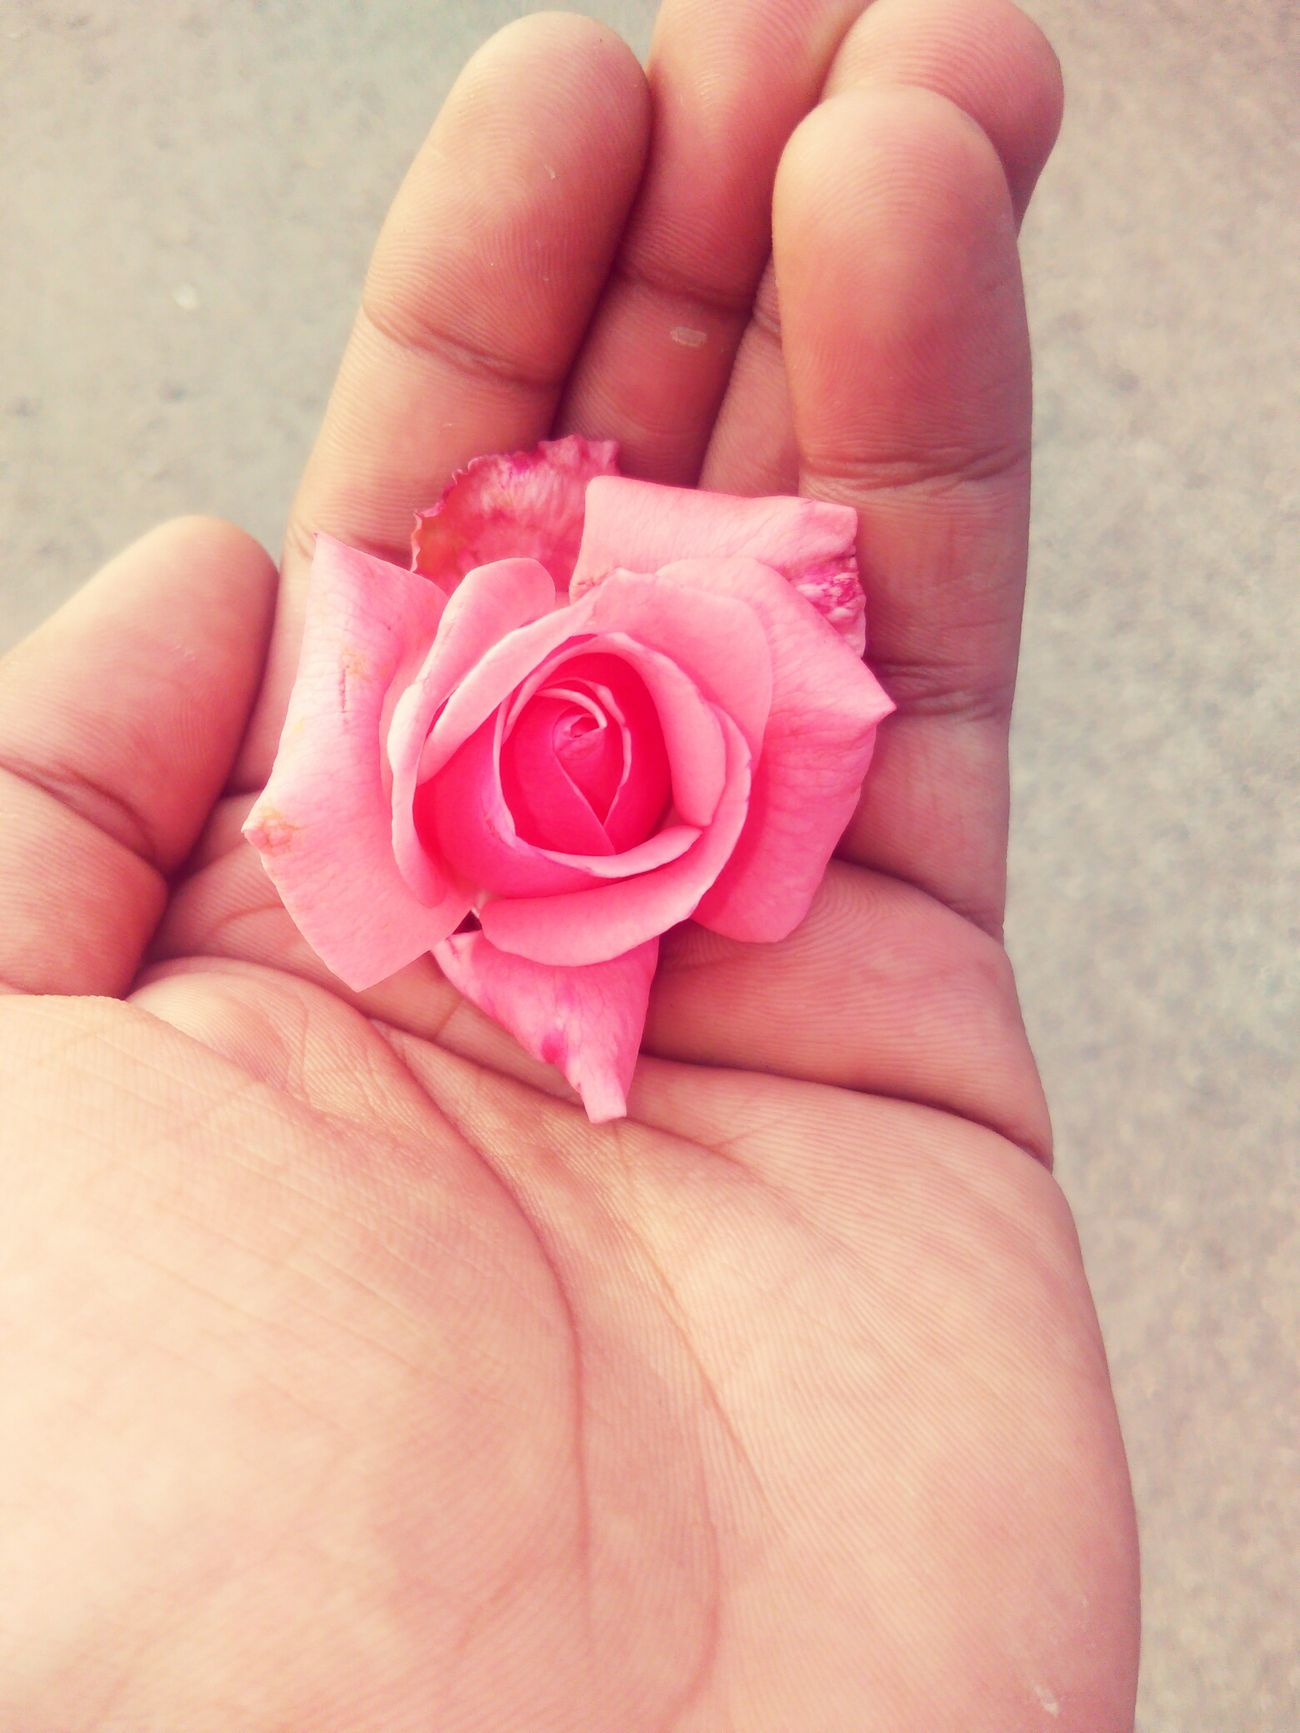 I found it 😊😍 Rose🌹 Pink Rose Rose In My Hand🌹 Hand My Hand  Street Photography Street Photo Streetphoto_color In Cairo Cairo Egypt